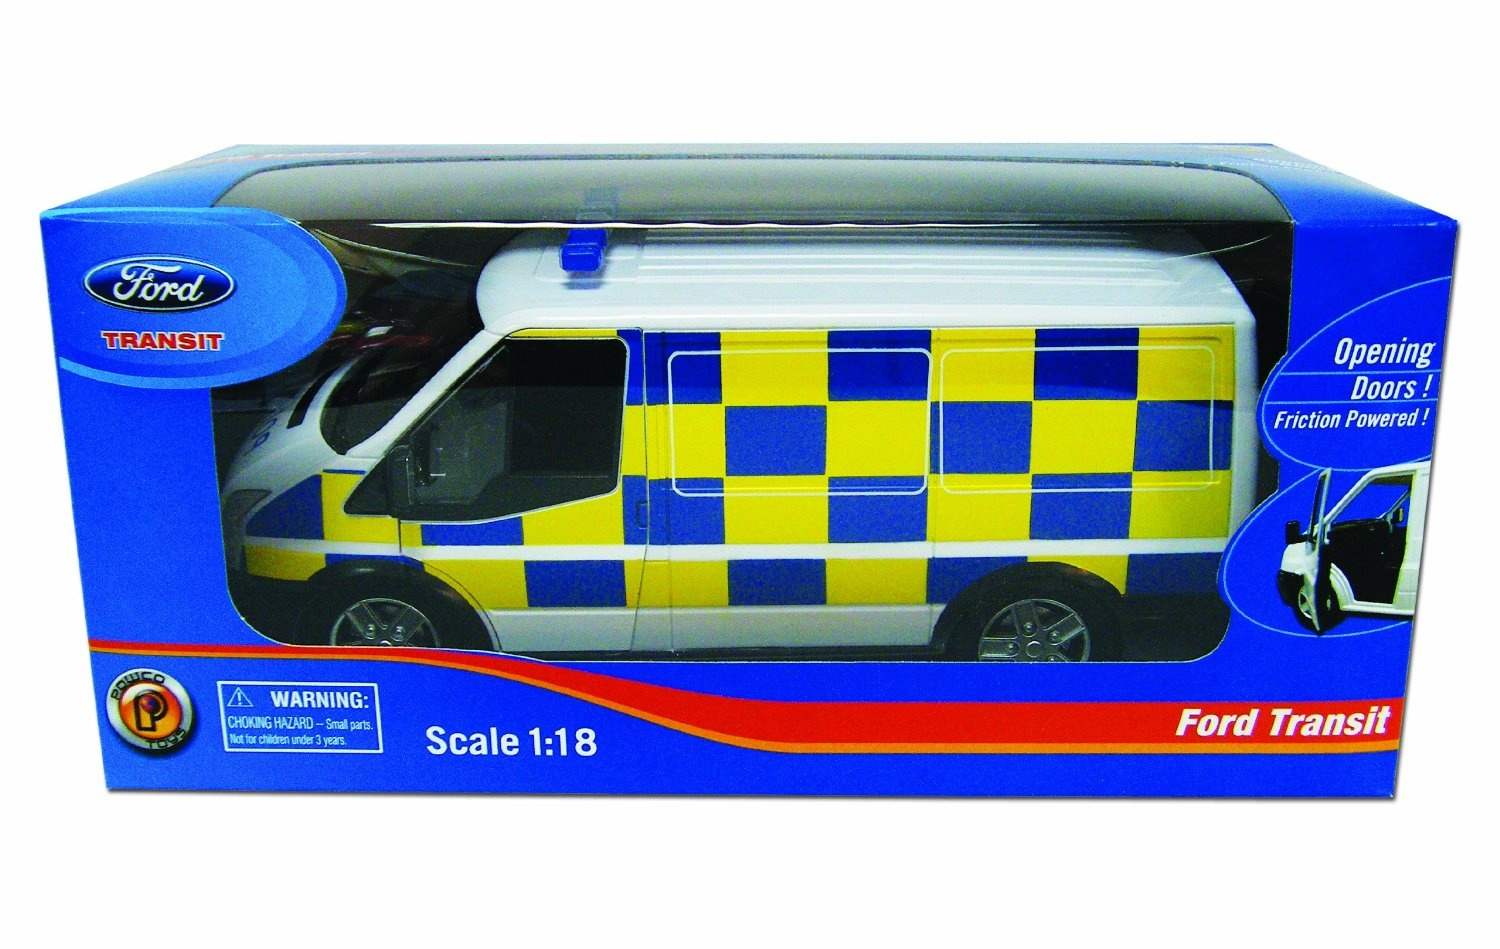 Powco Toys 1:18 Scale Friction Powered